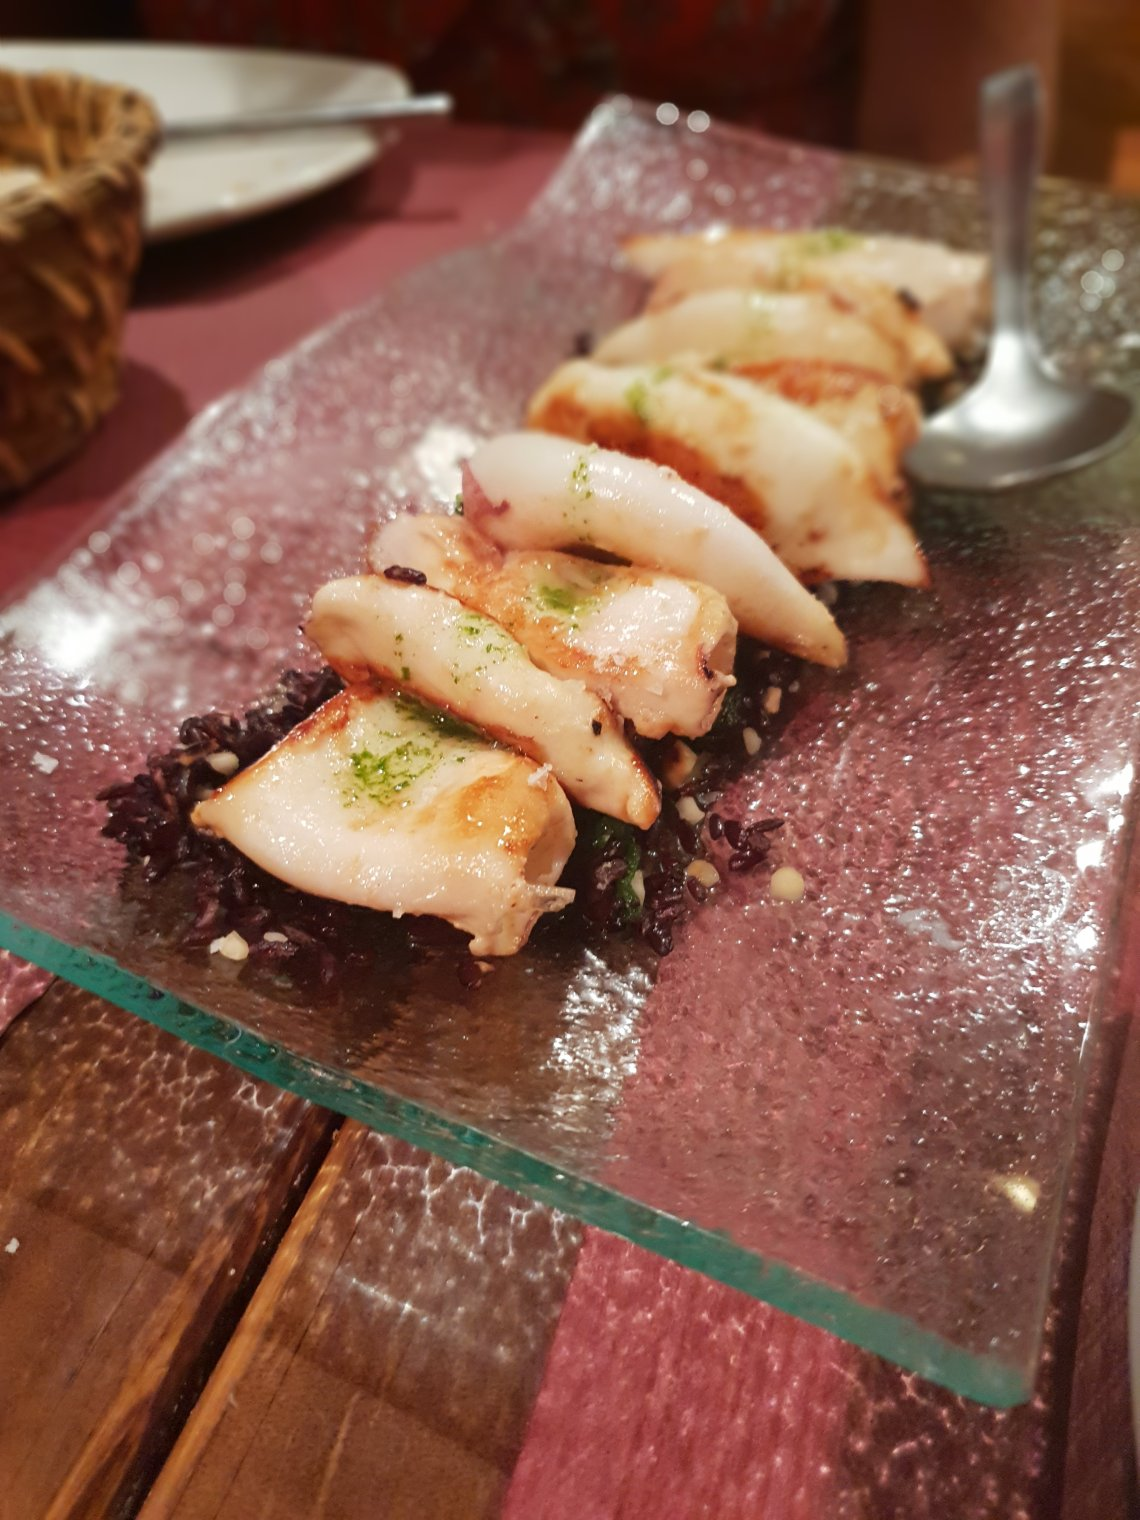 Squid and black rice in Malaga. A Foodie's Guide to Malaga.